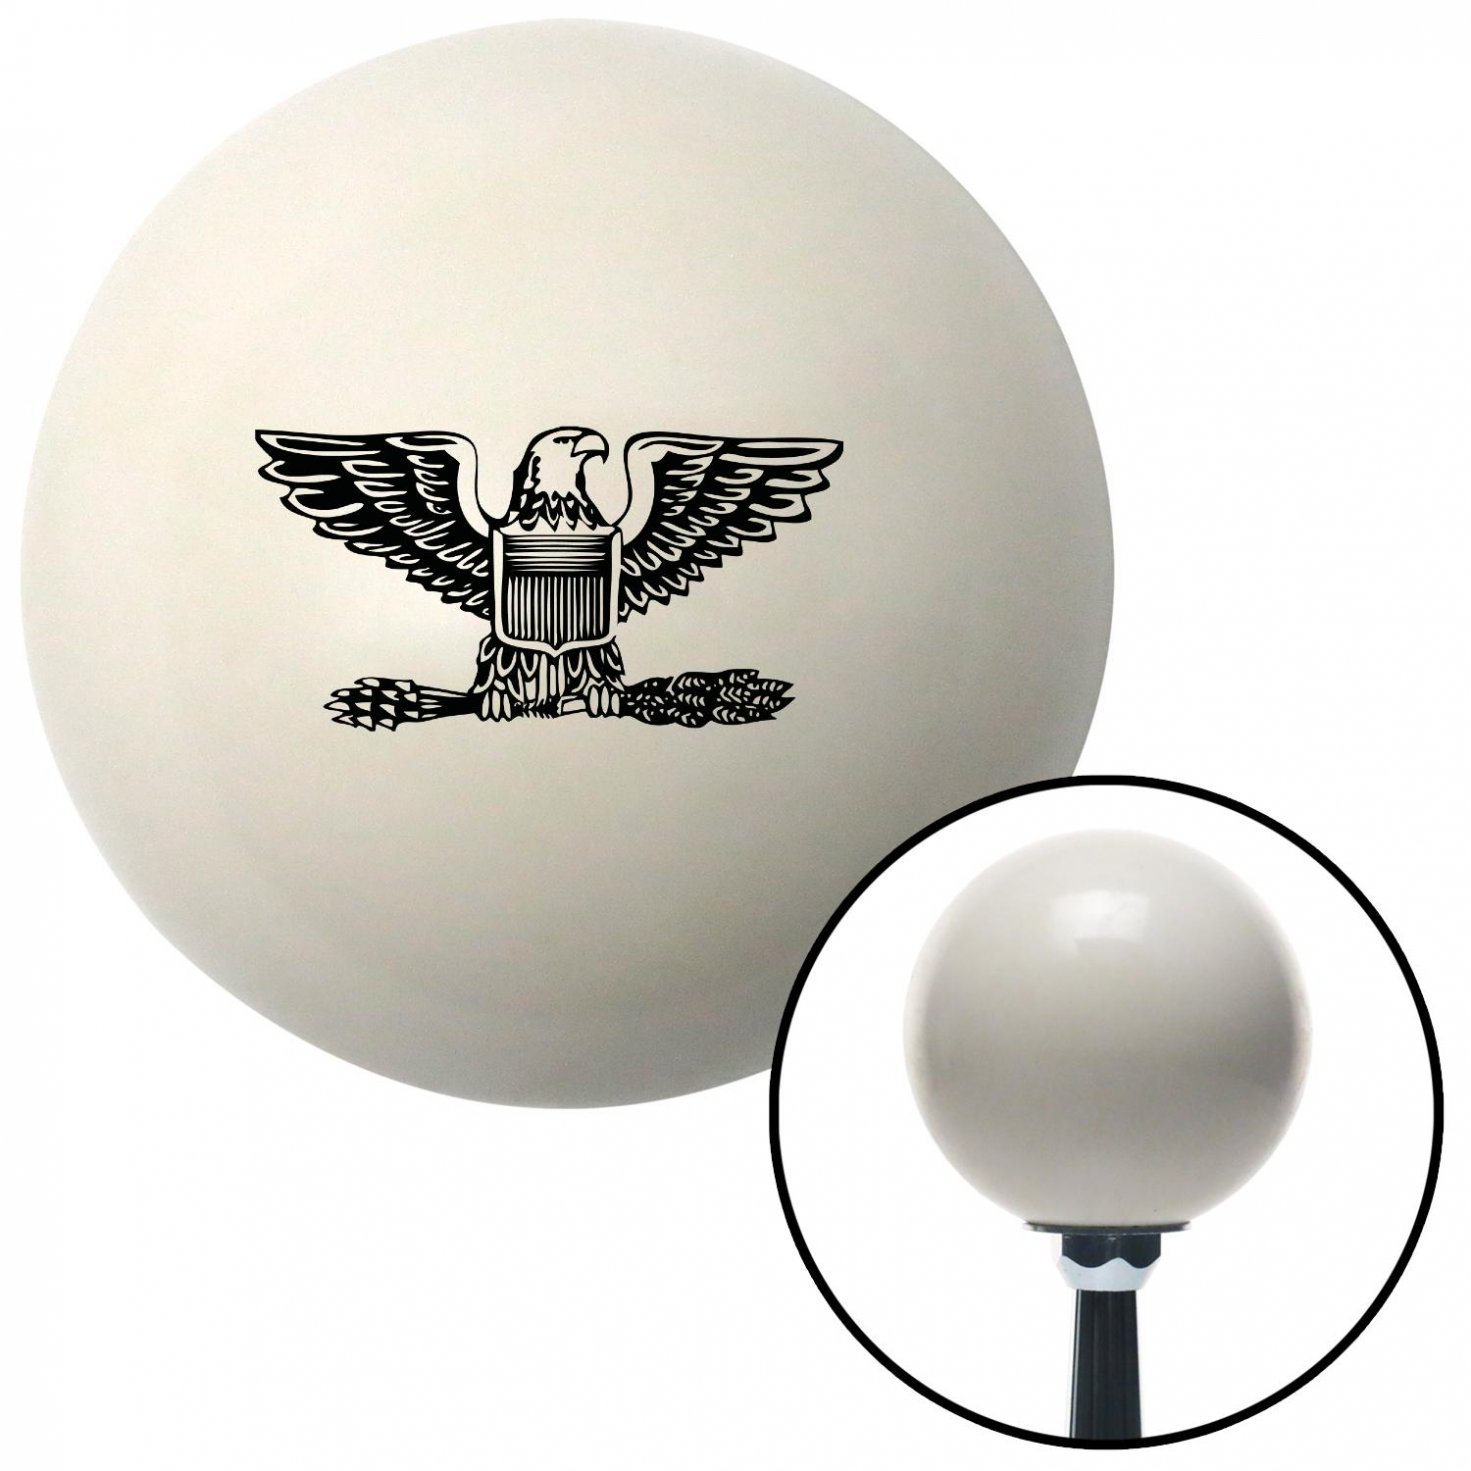 Black Colonel American Shifter 40532 Ivory Shift Knob with 16mm x 1.5 Insert